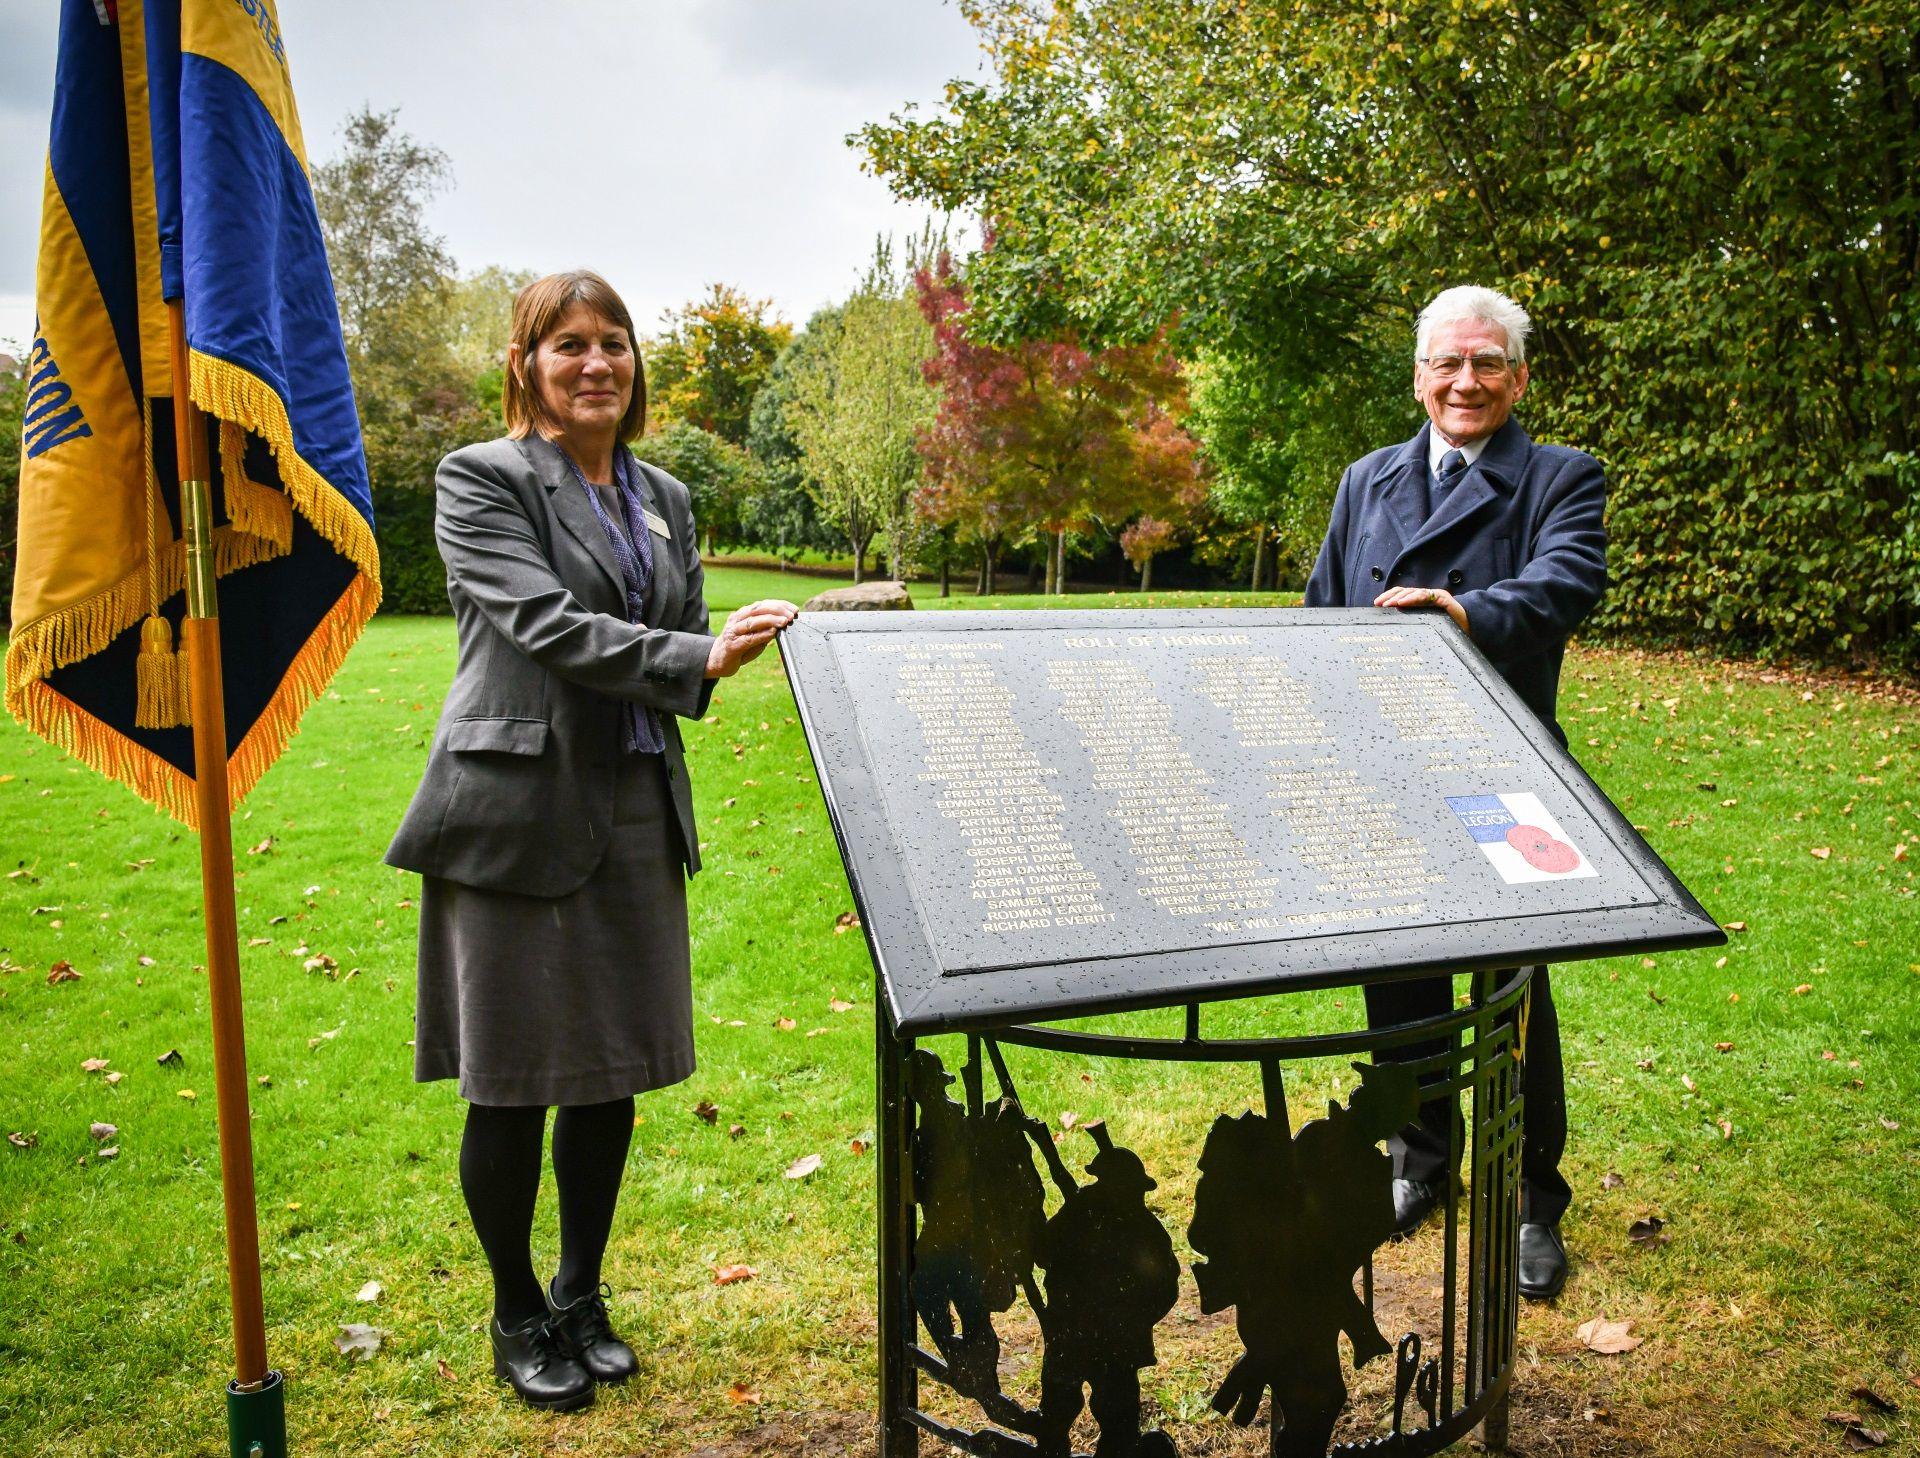 Memorial project paying tribute to townsfolk killed in the two world wars completed